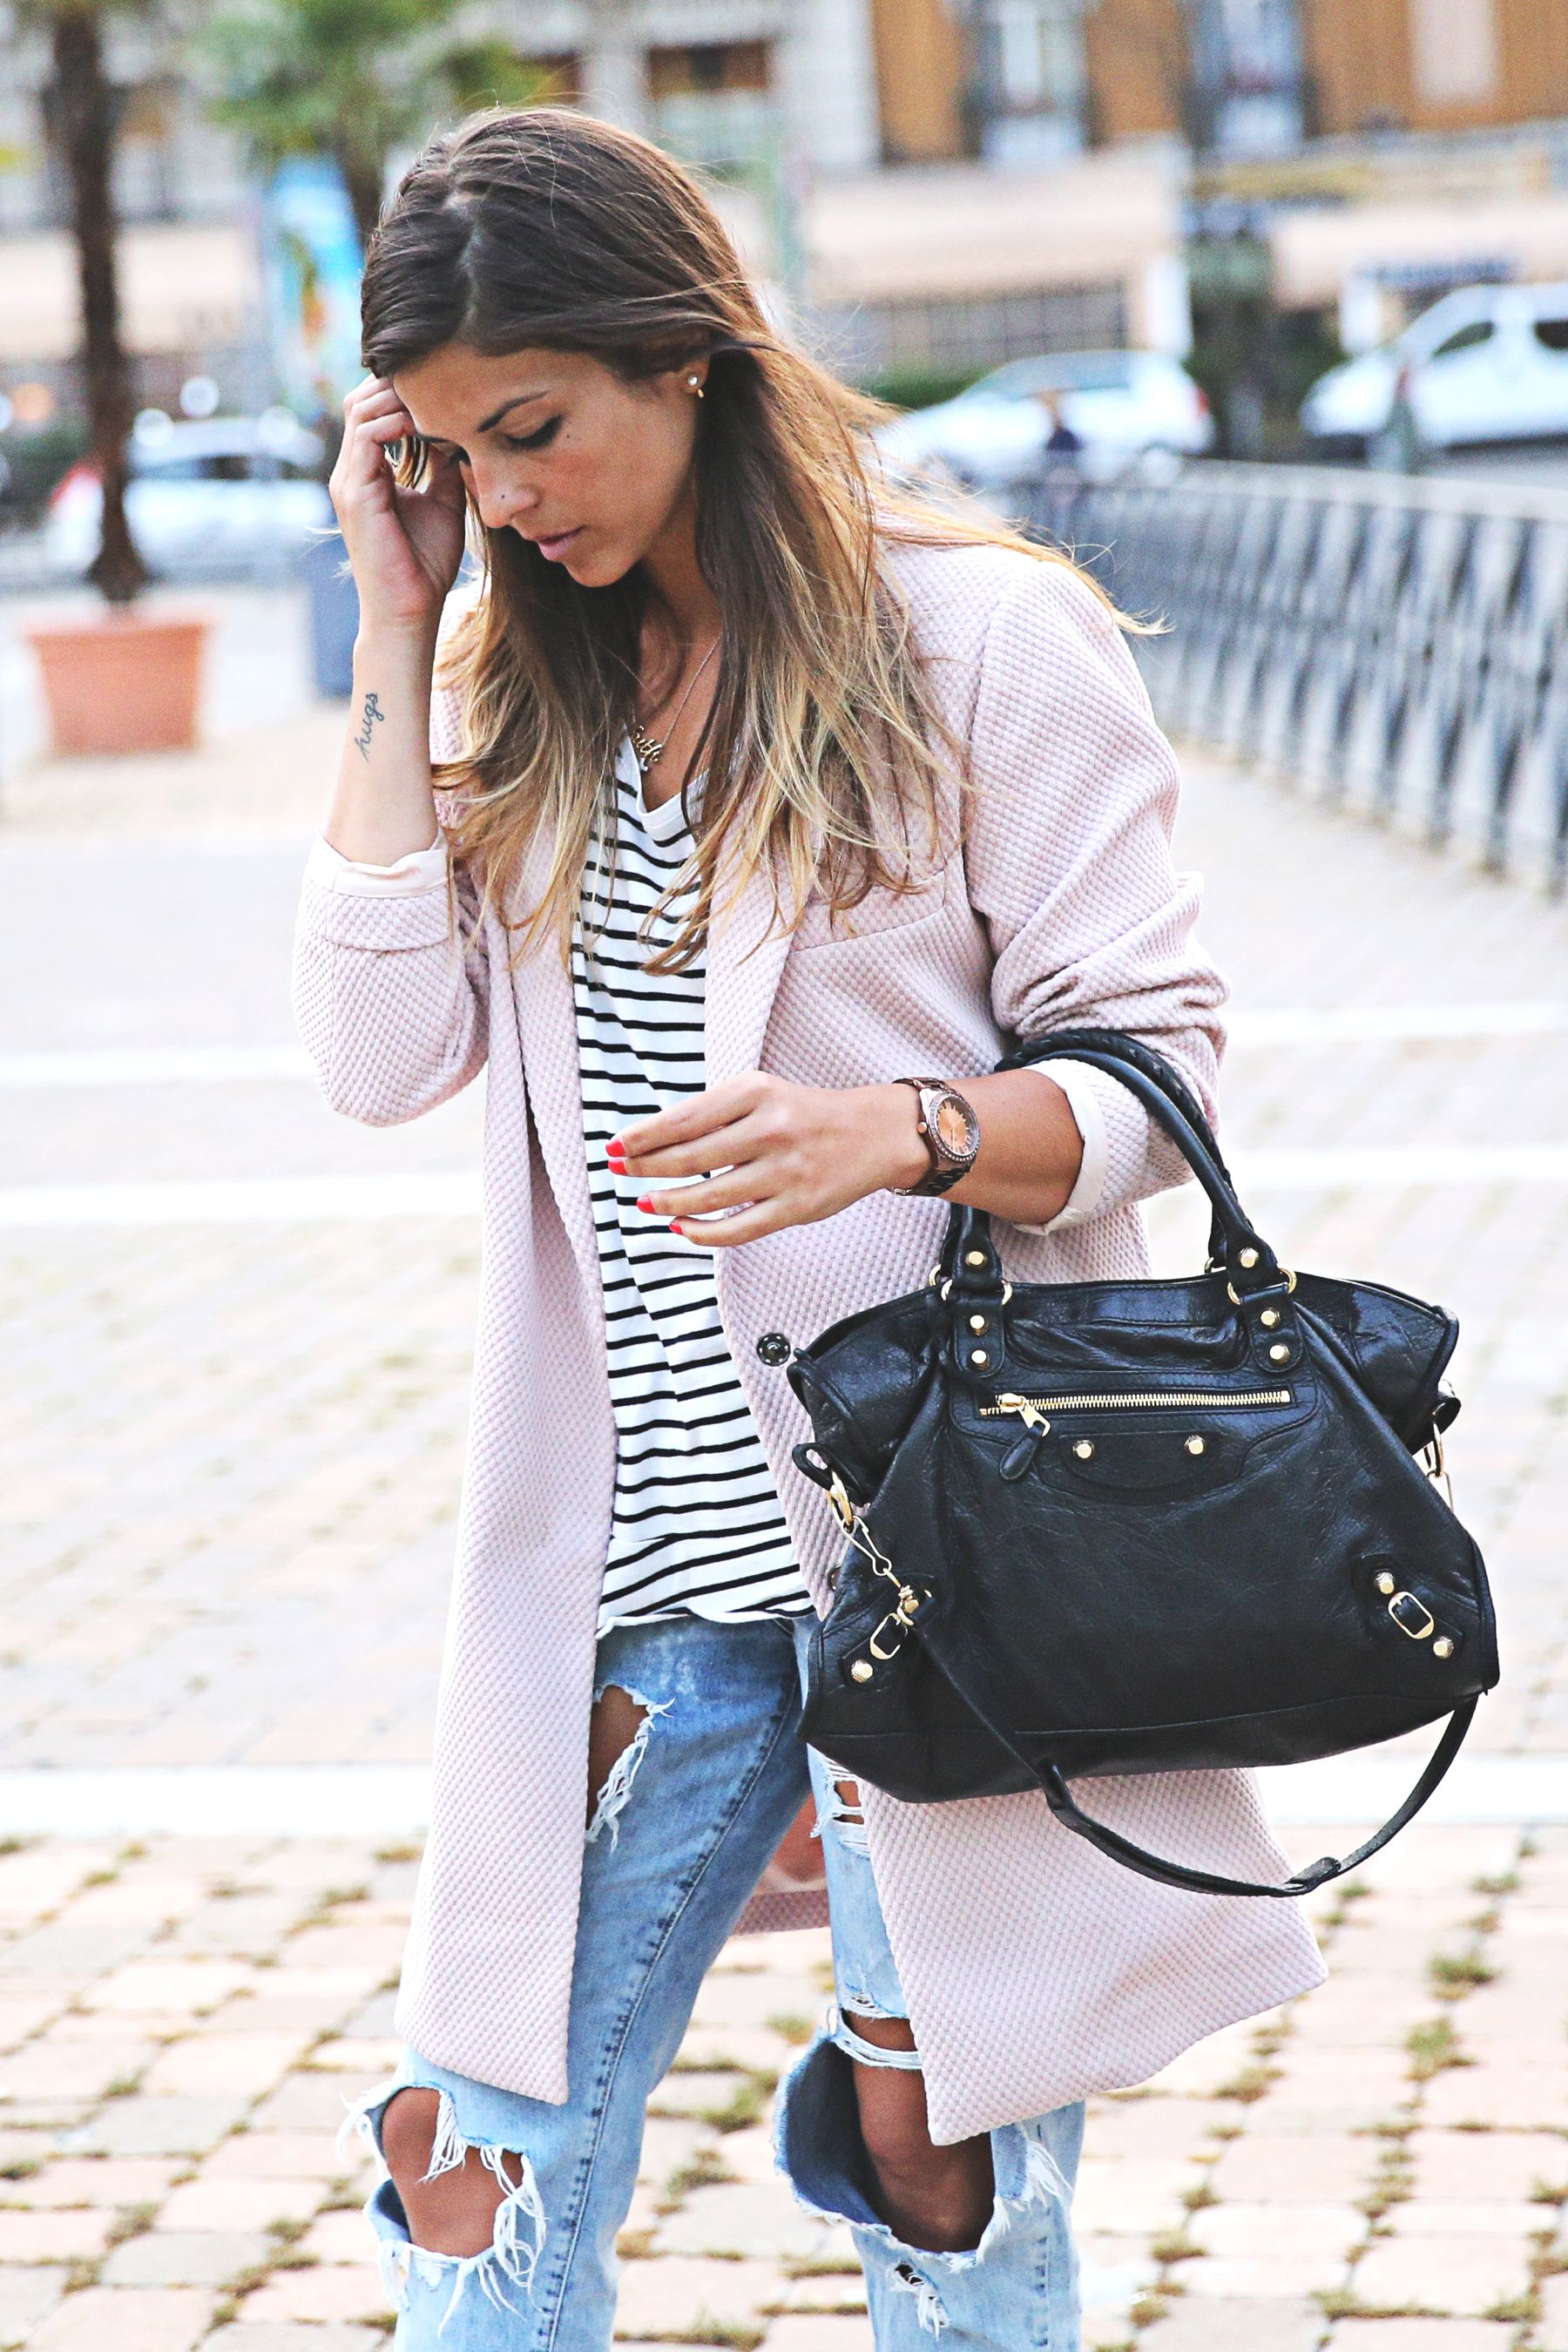 trendy-taste-look-outfit-street-style-sport-chic-camiseta-rayas-navy-marinero-boyfriend-ripped-jeans-vaqueros-rotos-adidas-superstar-1